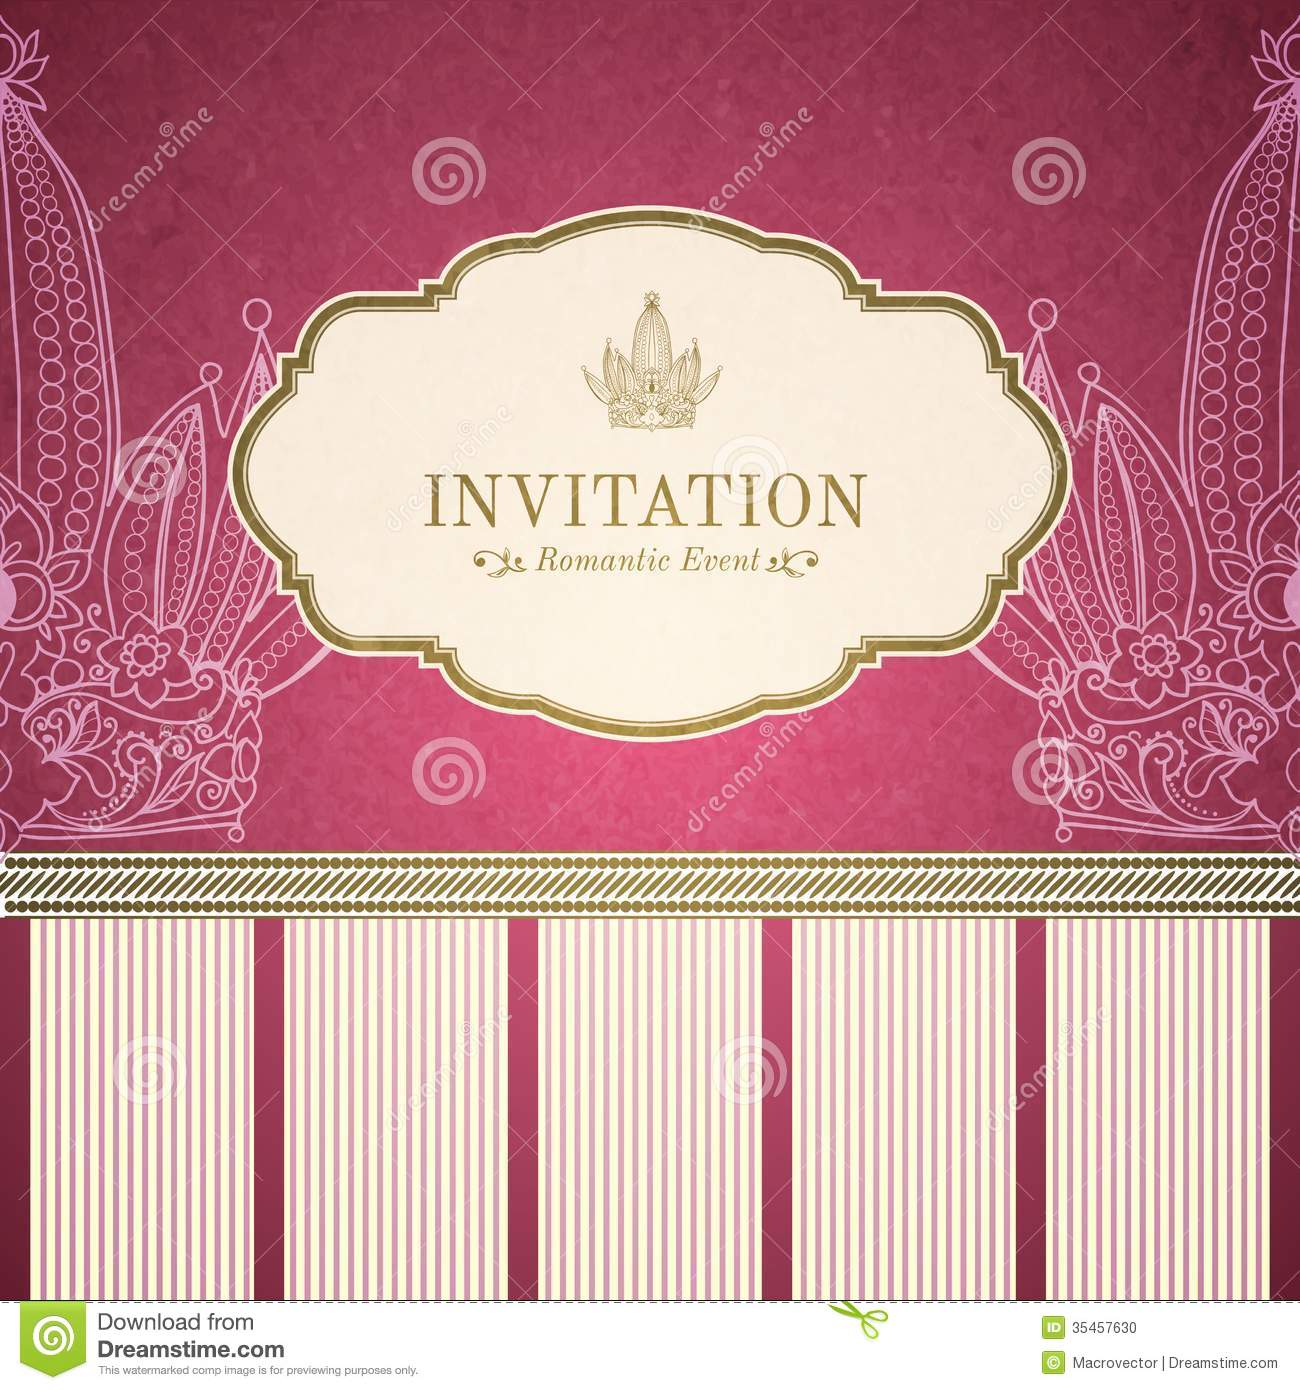 princess invitation template disney princess invitations retro princess invitation template stock photo image 35457630